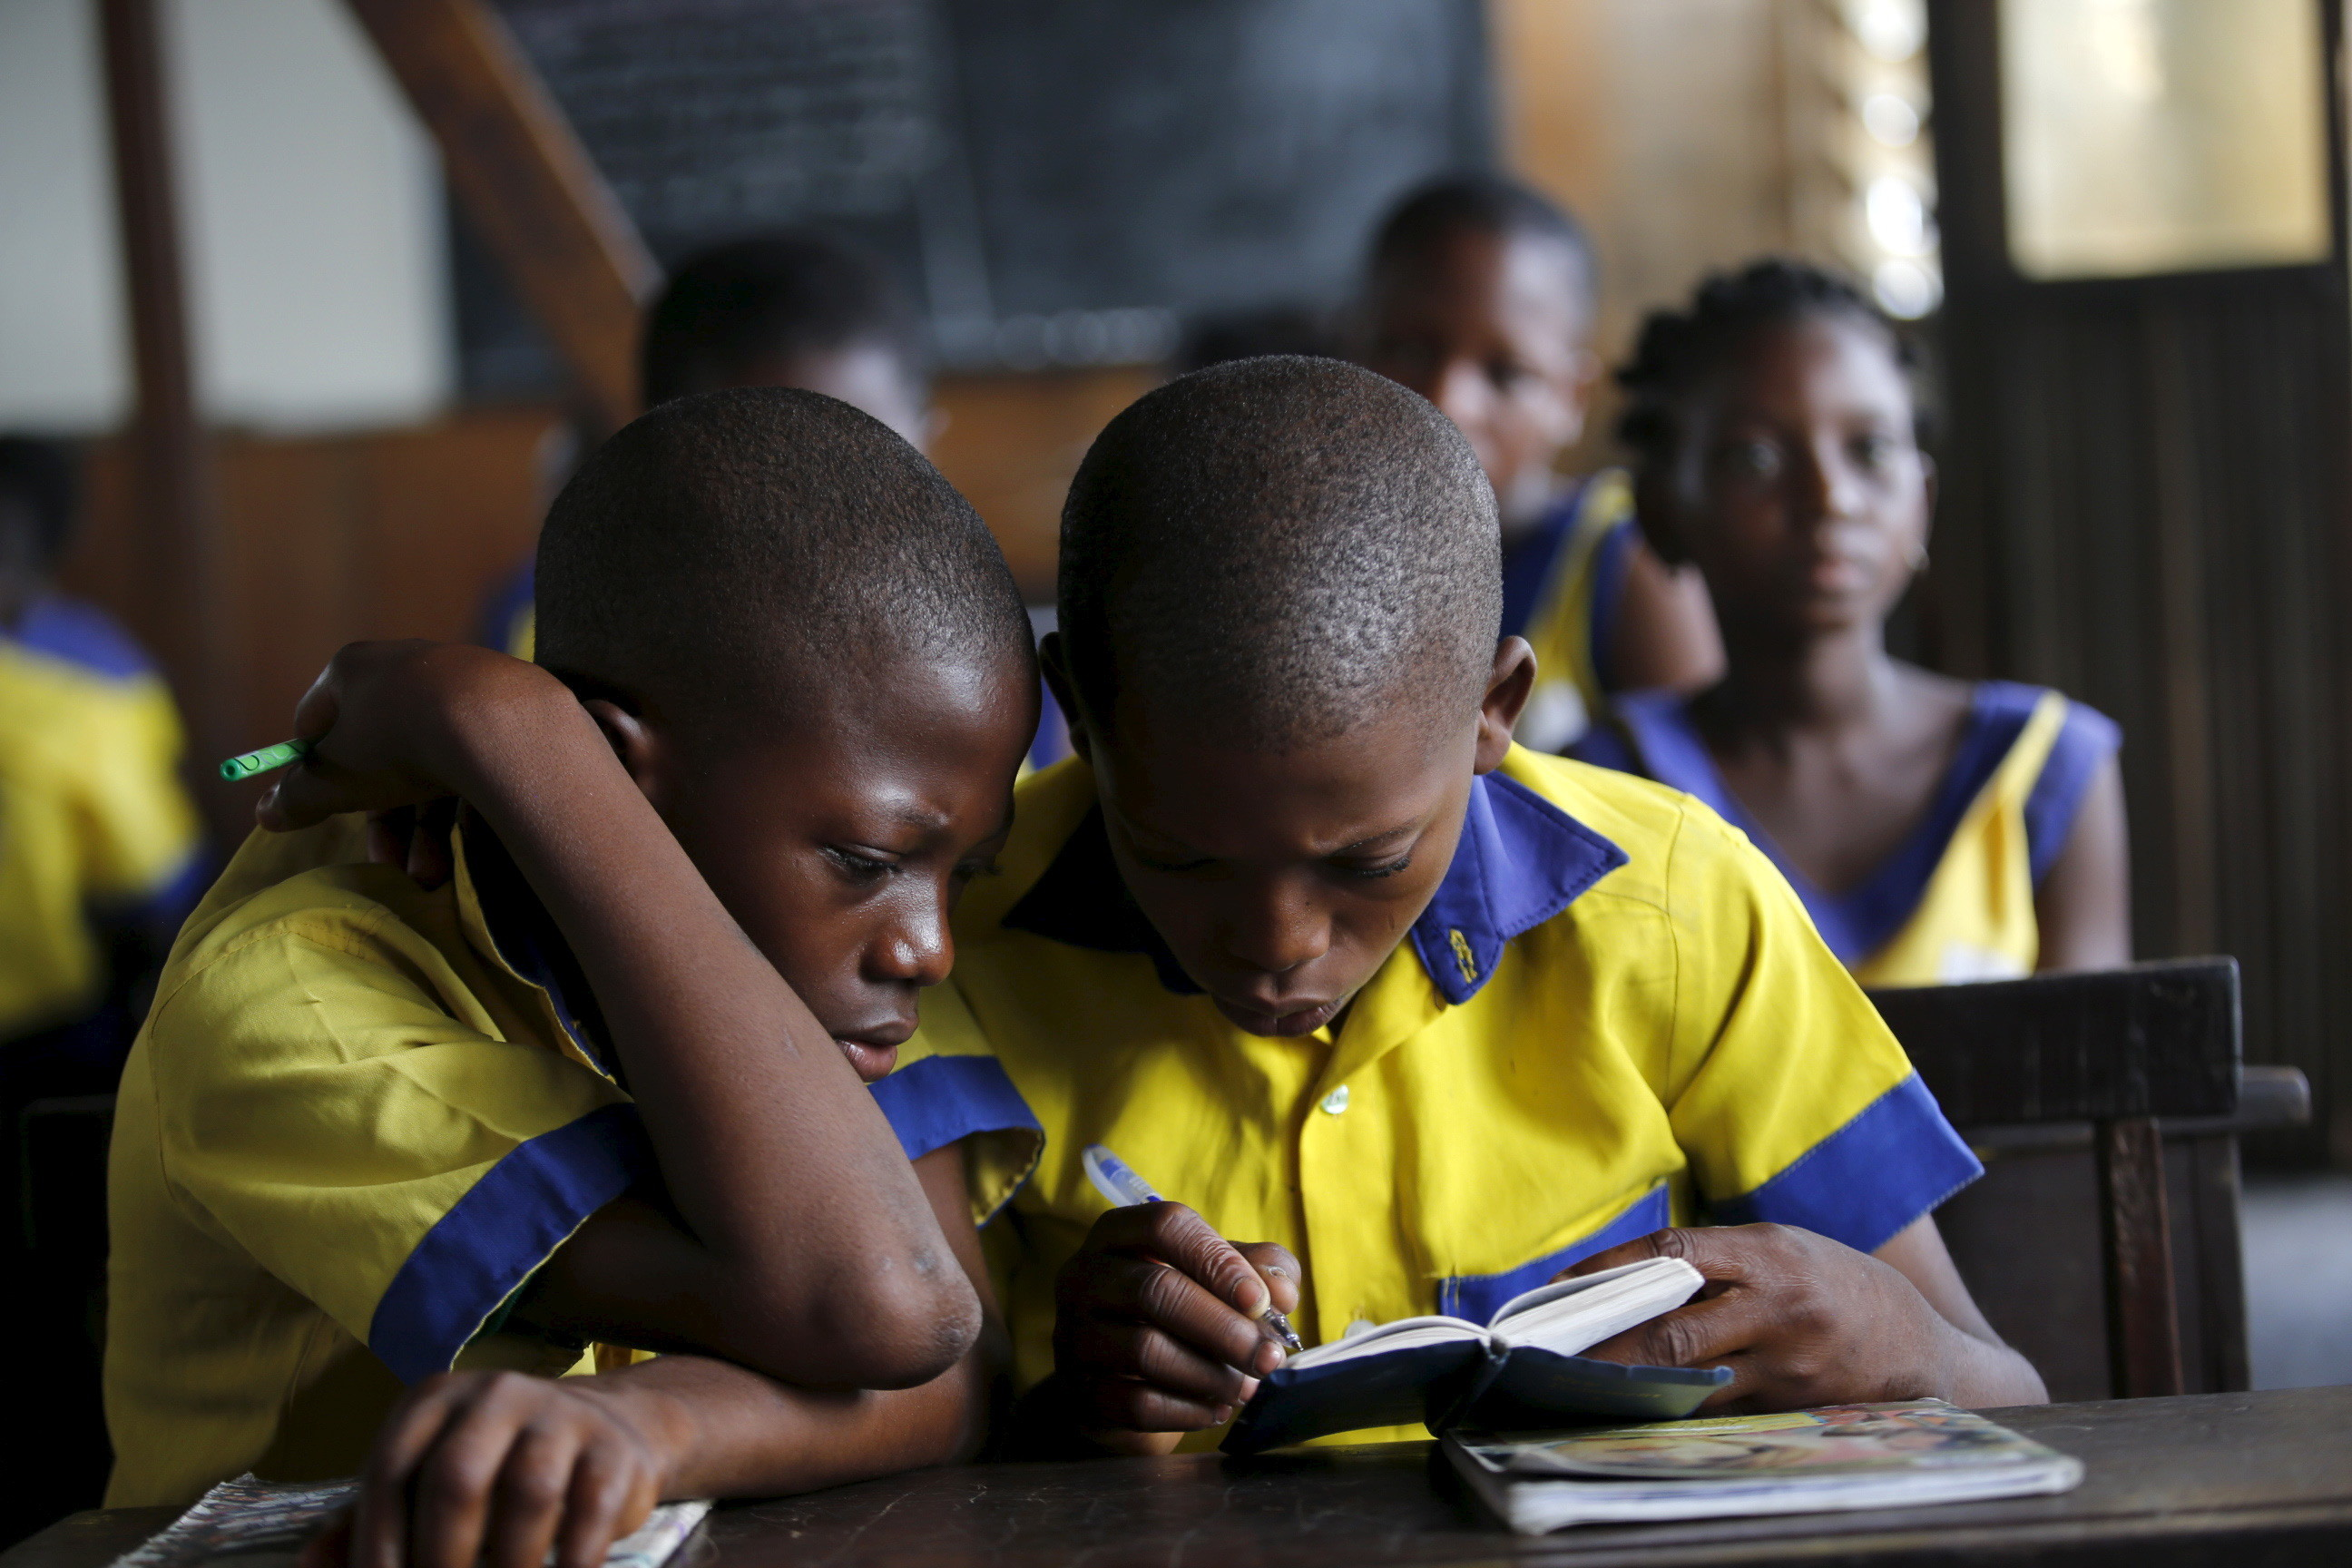 "Students read a book at the Makoko floating school on the Lagos Lagoon, Nigeria February 29, 2016. In Makoko, a sprawling slum of Nigeria's megacity Lagos, a floating school capable of holding up to a hundred pupils has since November brought free education to the waterways known as the Venice of Lagos. It offers the chance of social mobility for youngsters who, like most of the city's 21 million inhabitants, lack a reliable electricity and water supply and whose water-based way of life is threatened by climate change as well as rapid urbanisation. REUTERS/Akintunde Akinleye SEARCH ""THE WIDER IMAGE"" FOR ALL STORIES  - GF10000333183"